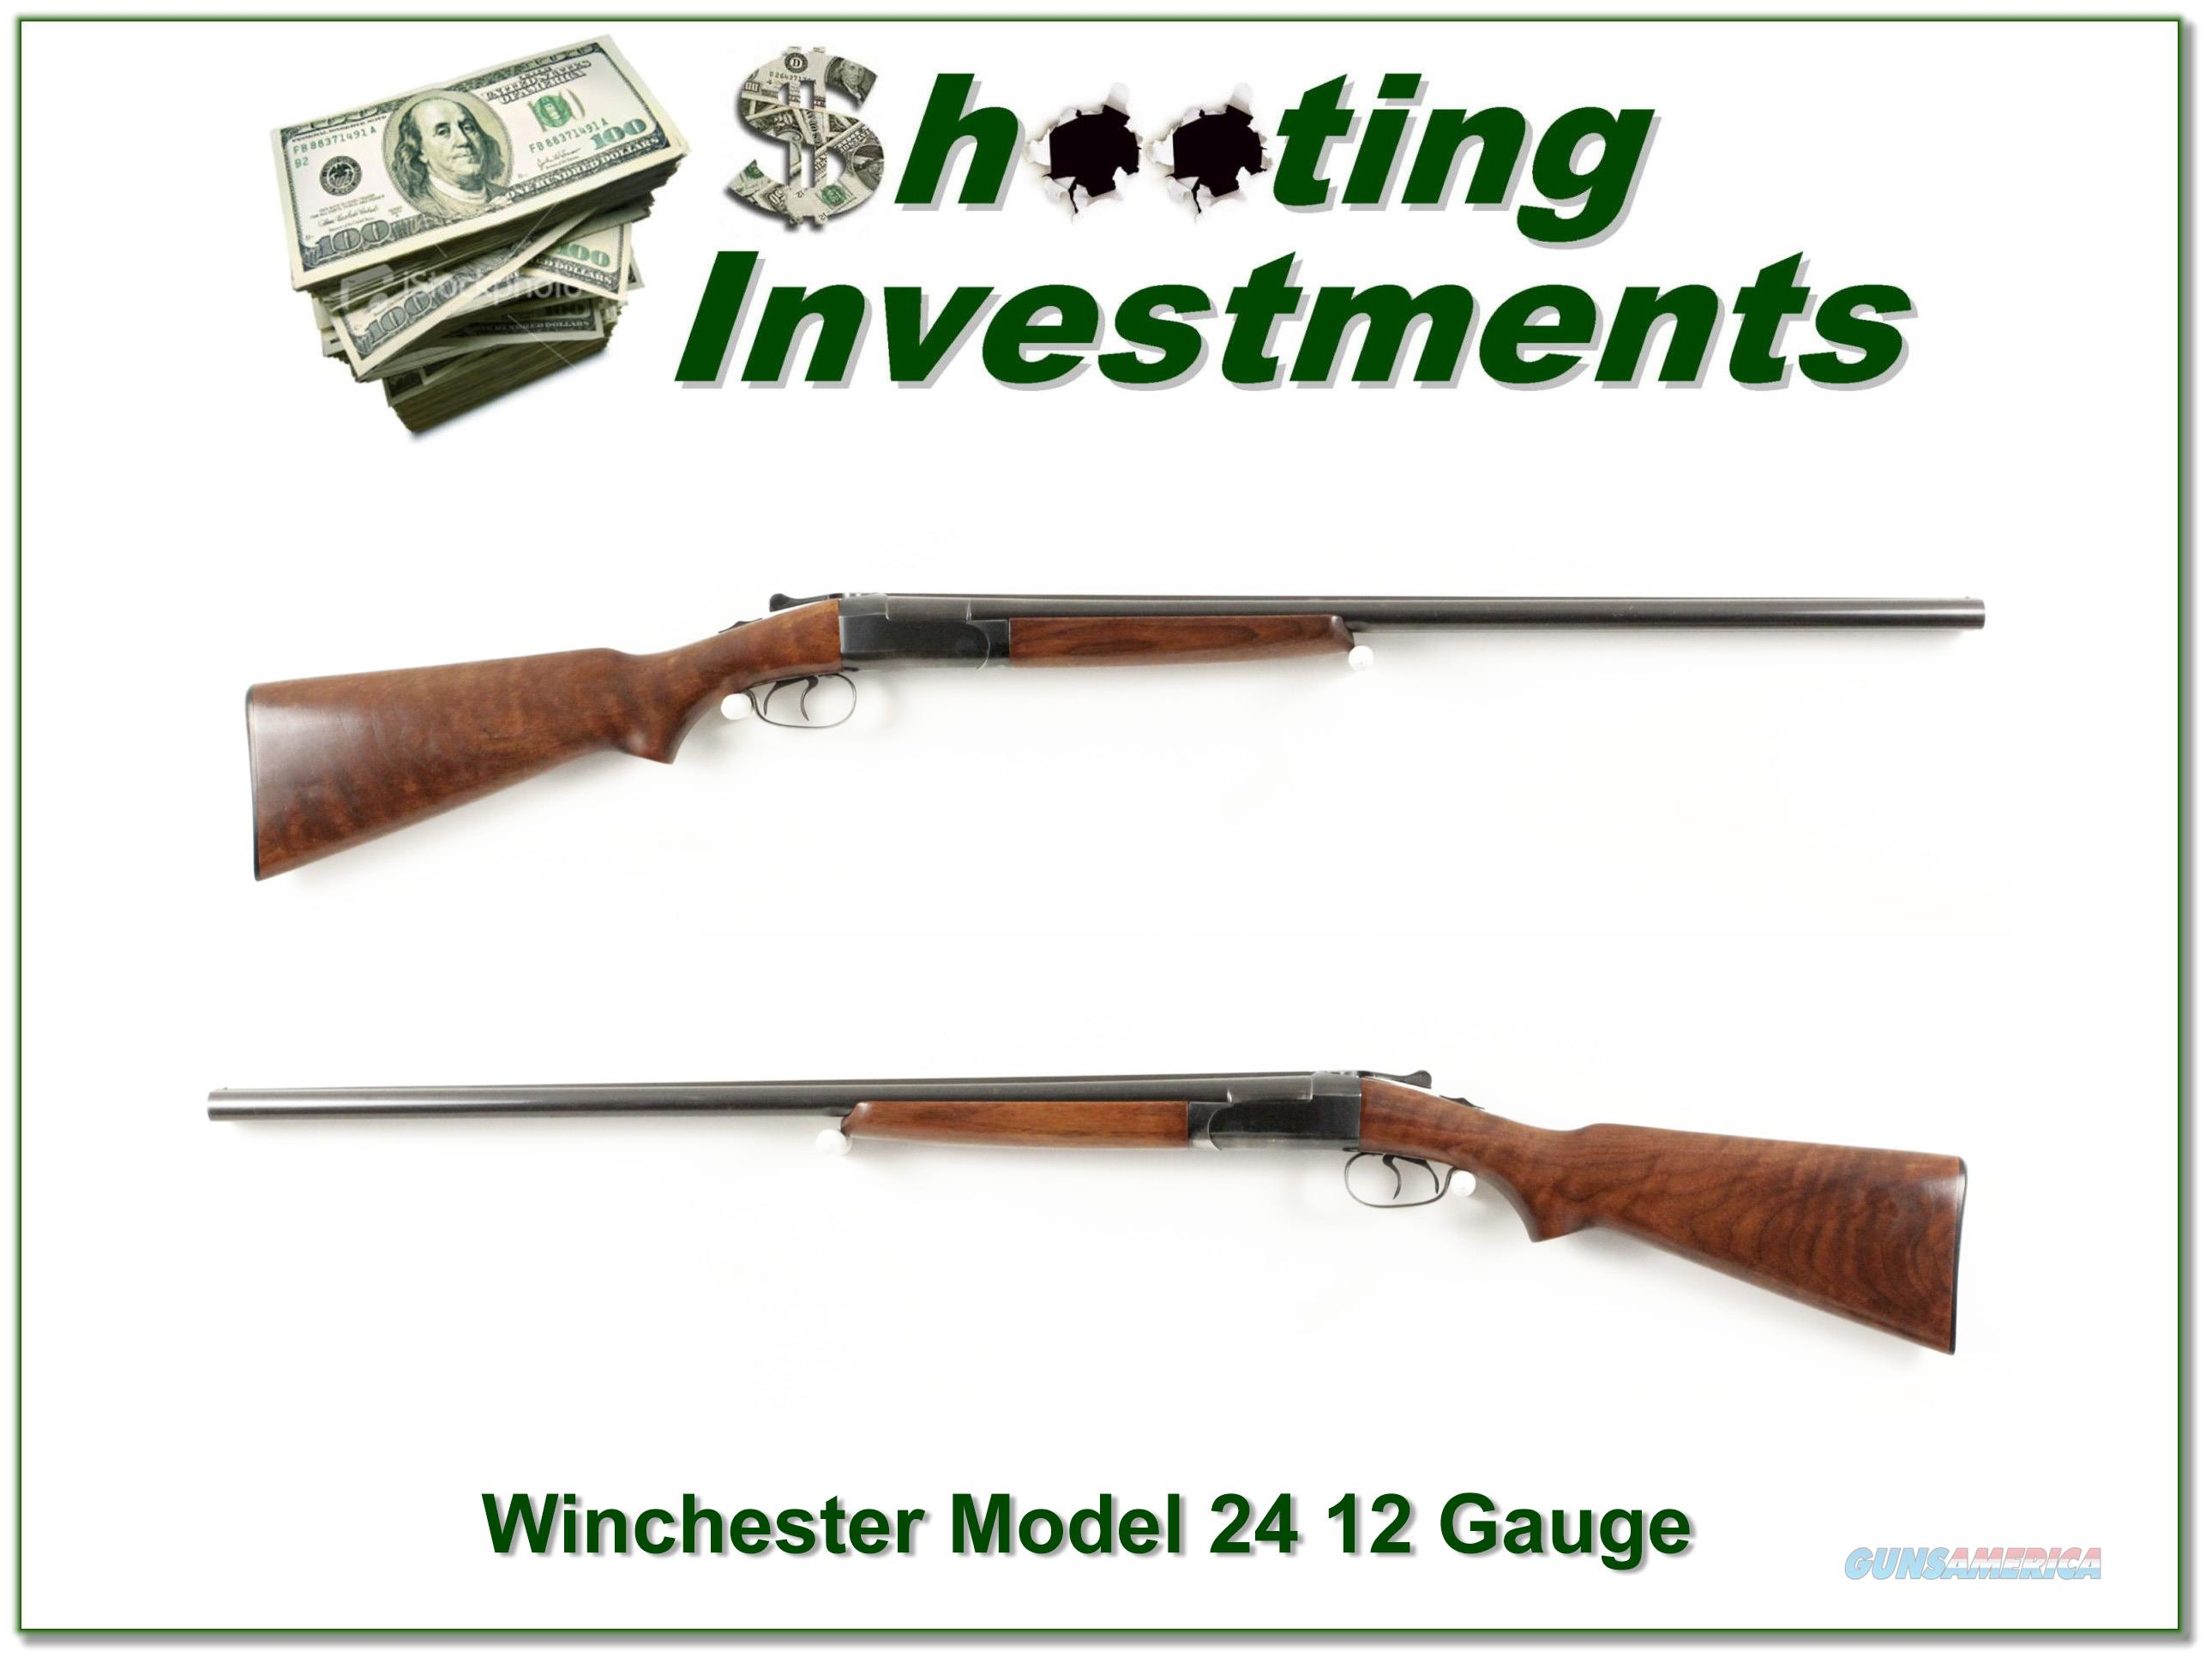 Winchester Model 24 12 Gauge made in 1950 28in  Guns > Shotguns > Winchester Shotguns - Modern > SxS